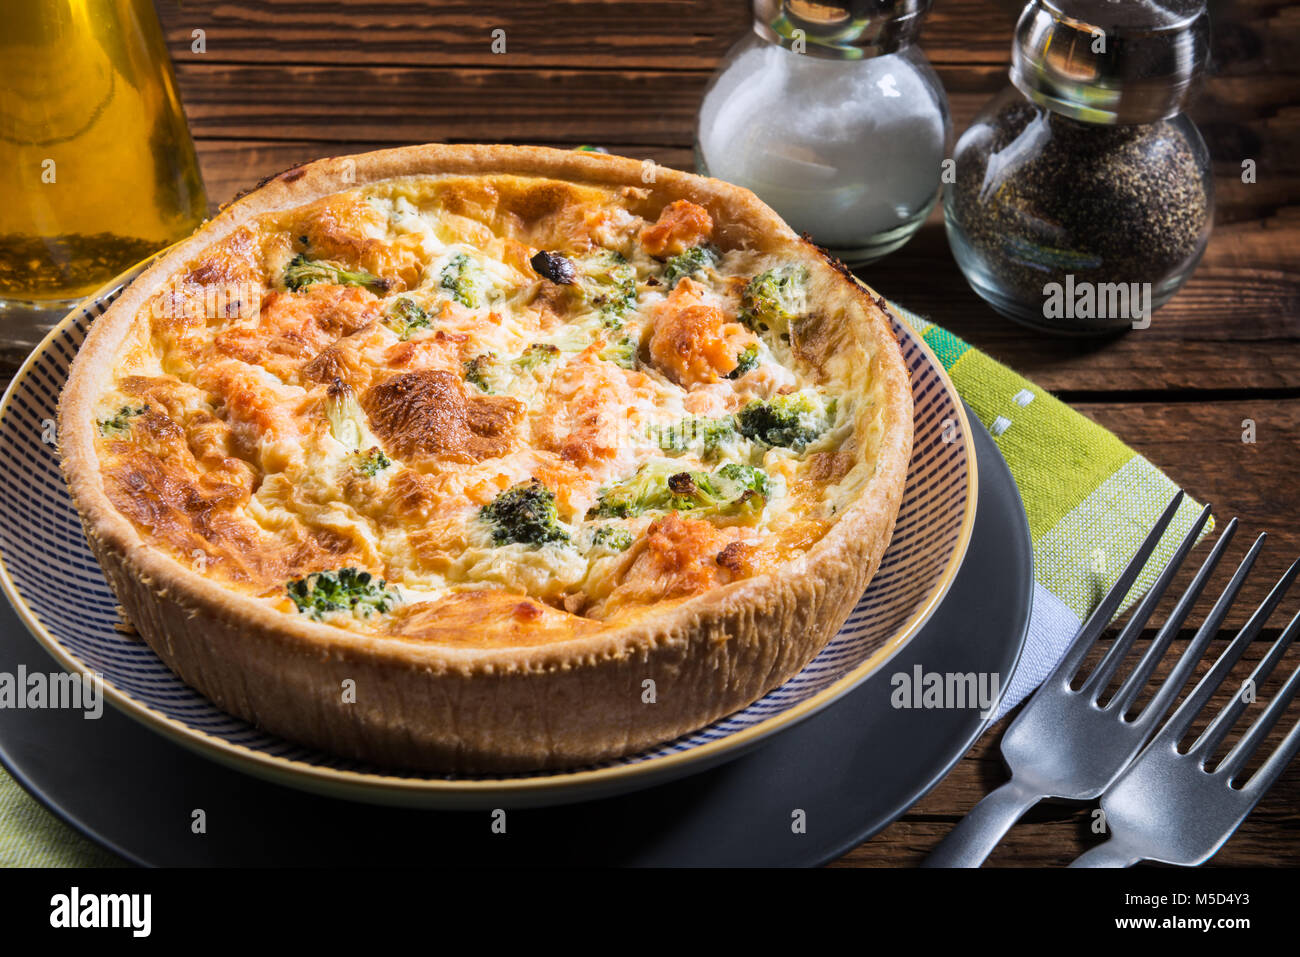 Classic salmon and broccoli quiche made from shortcrust pastry with broccoli florets and smoked salmon in a creamy - Stock Image